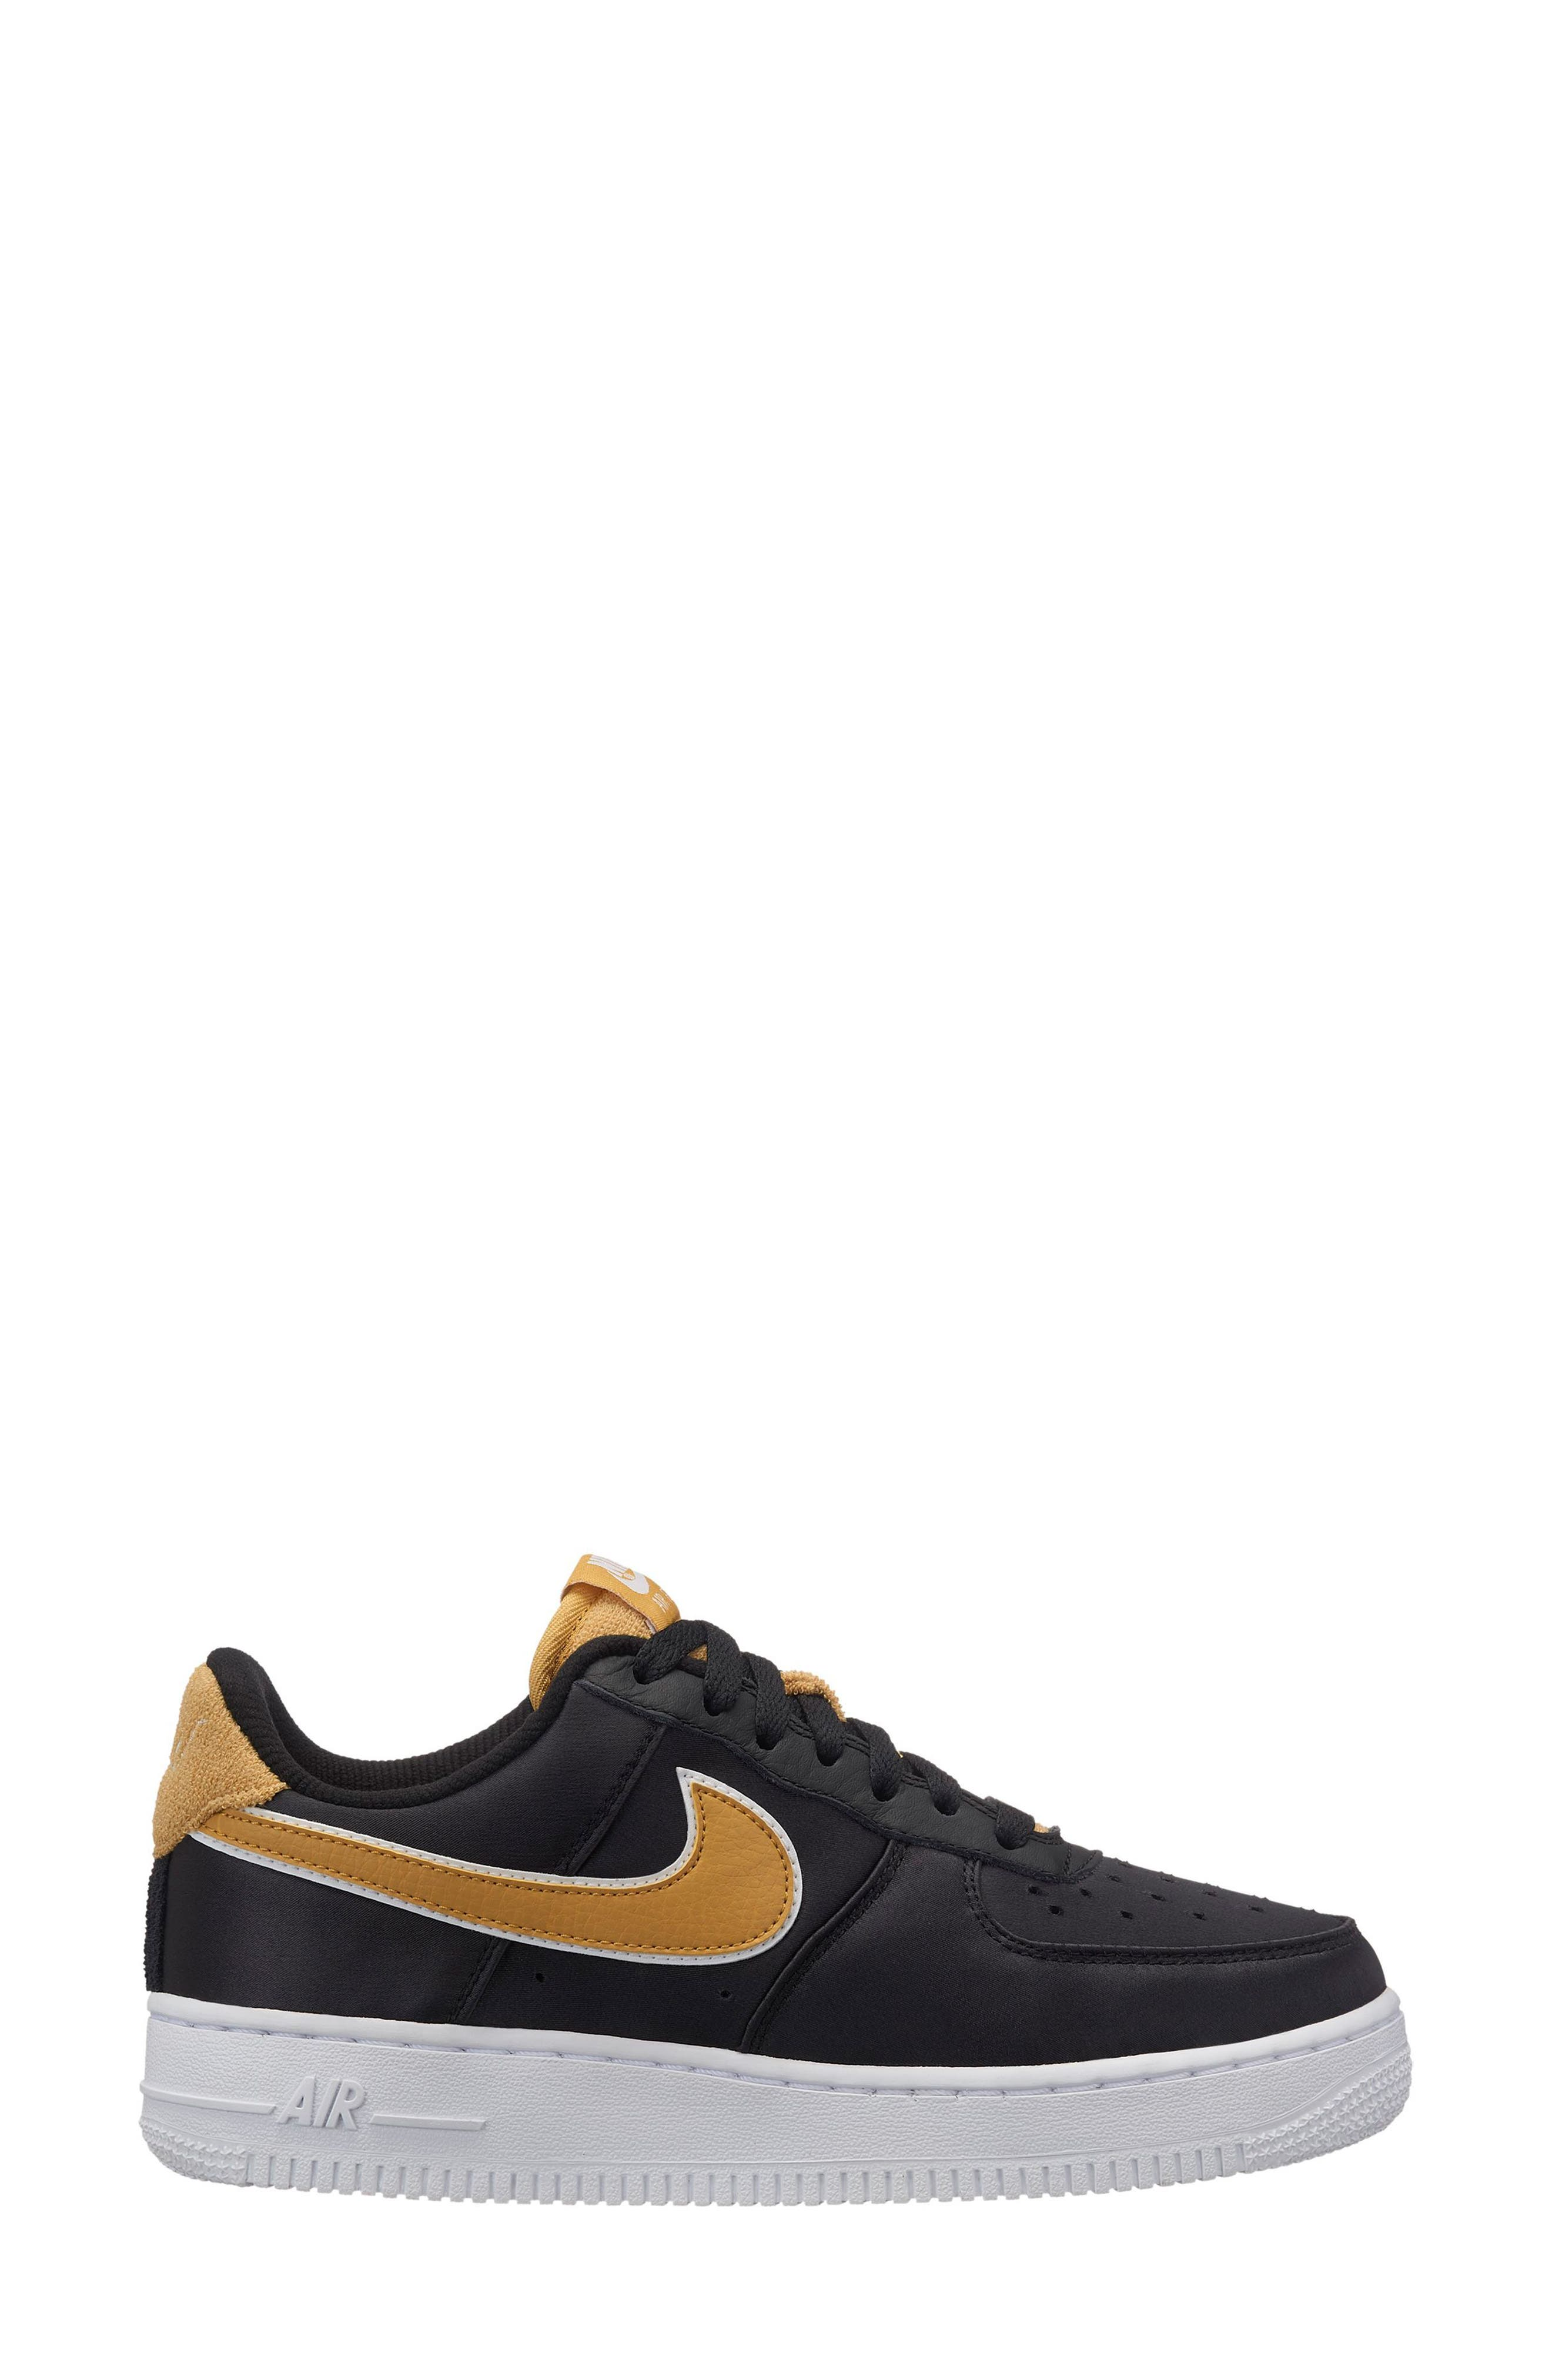 Air Force 1 '07 SE Sneaker,                         Main,                         color, BLACK/ WHEAT GOLD-WHITE